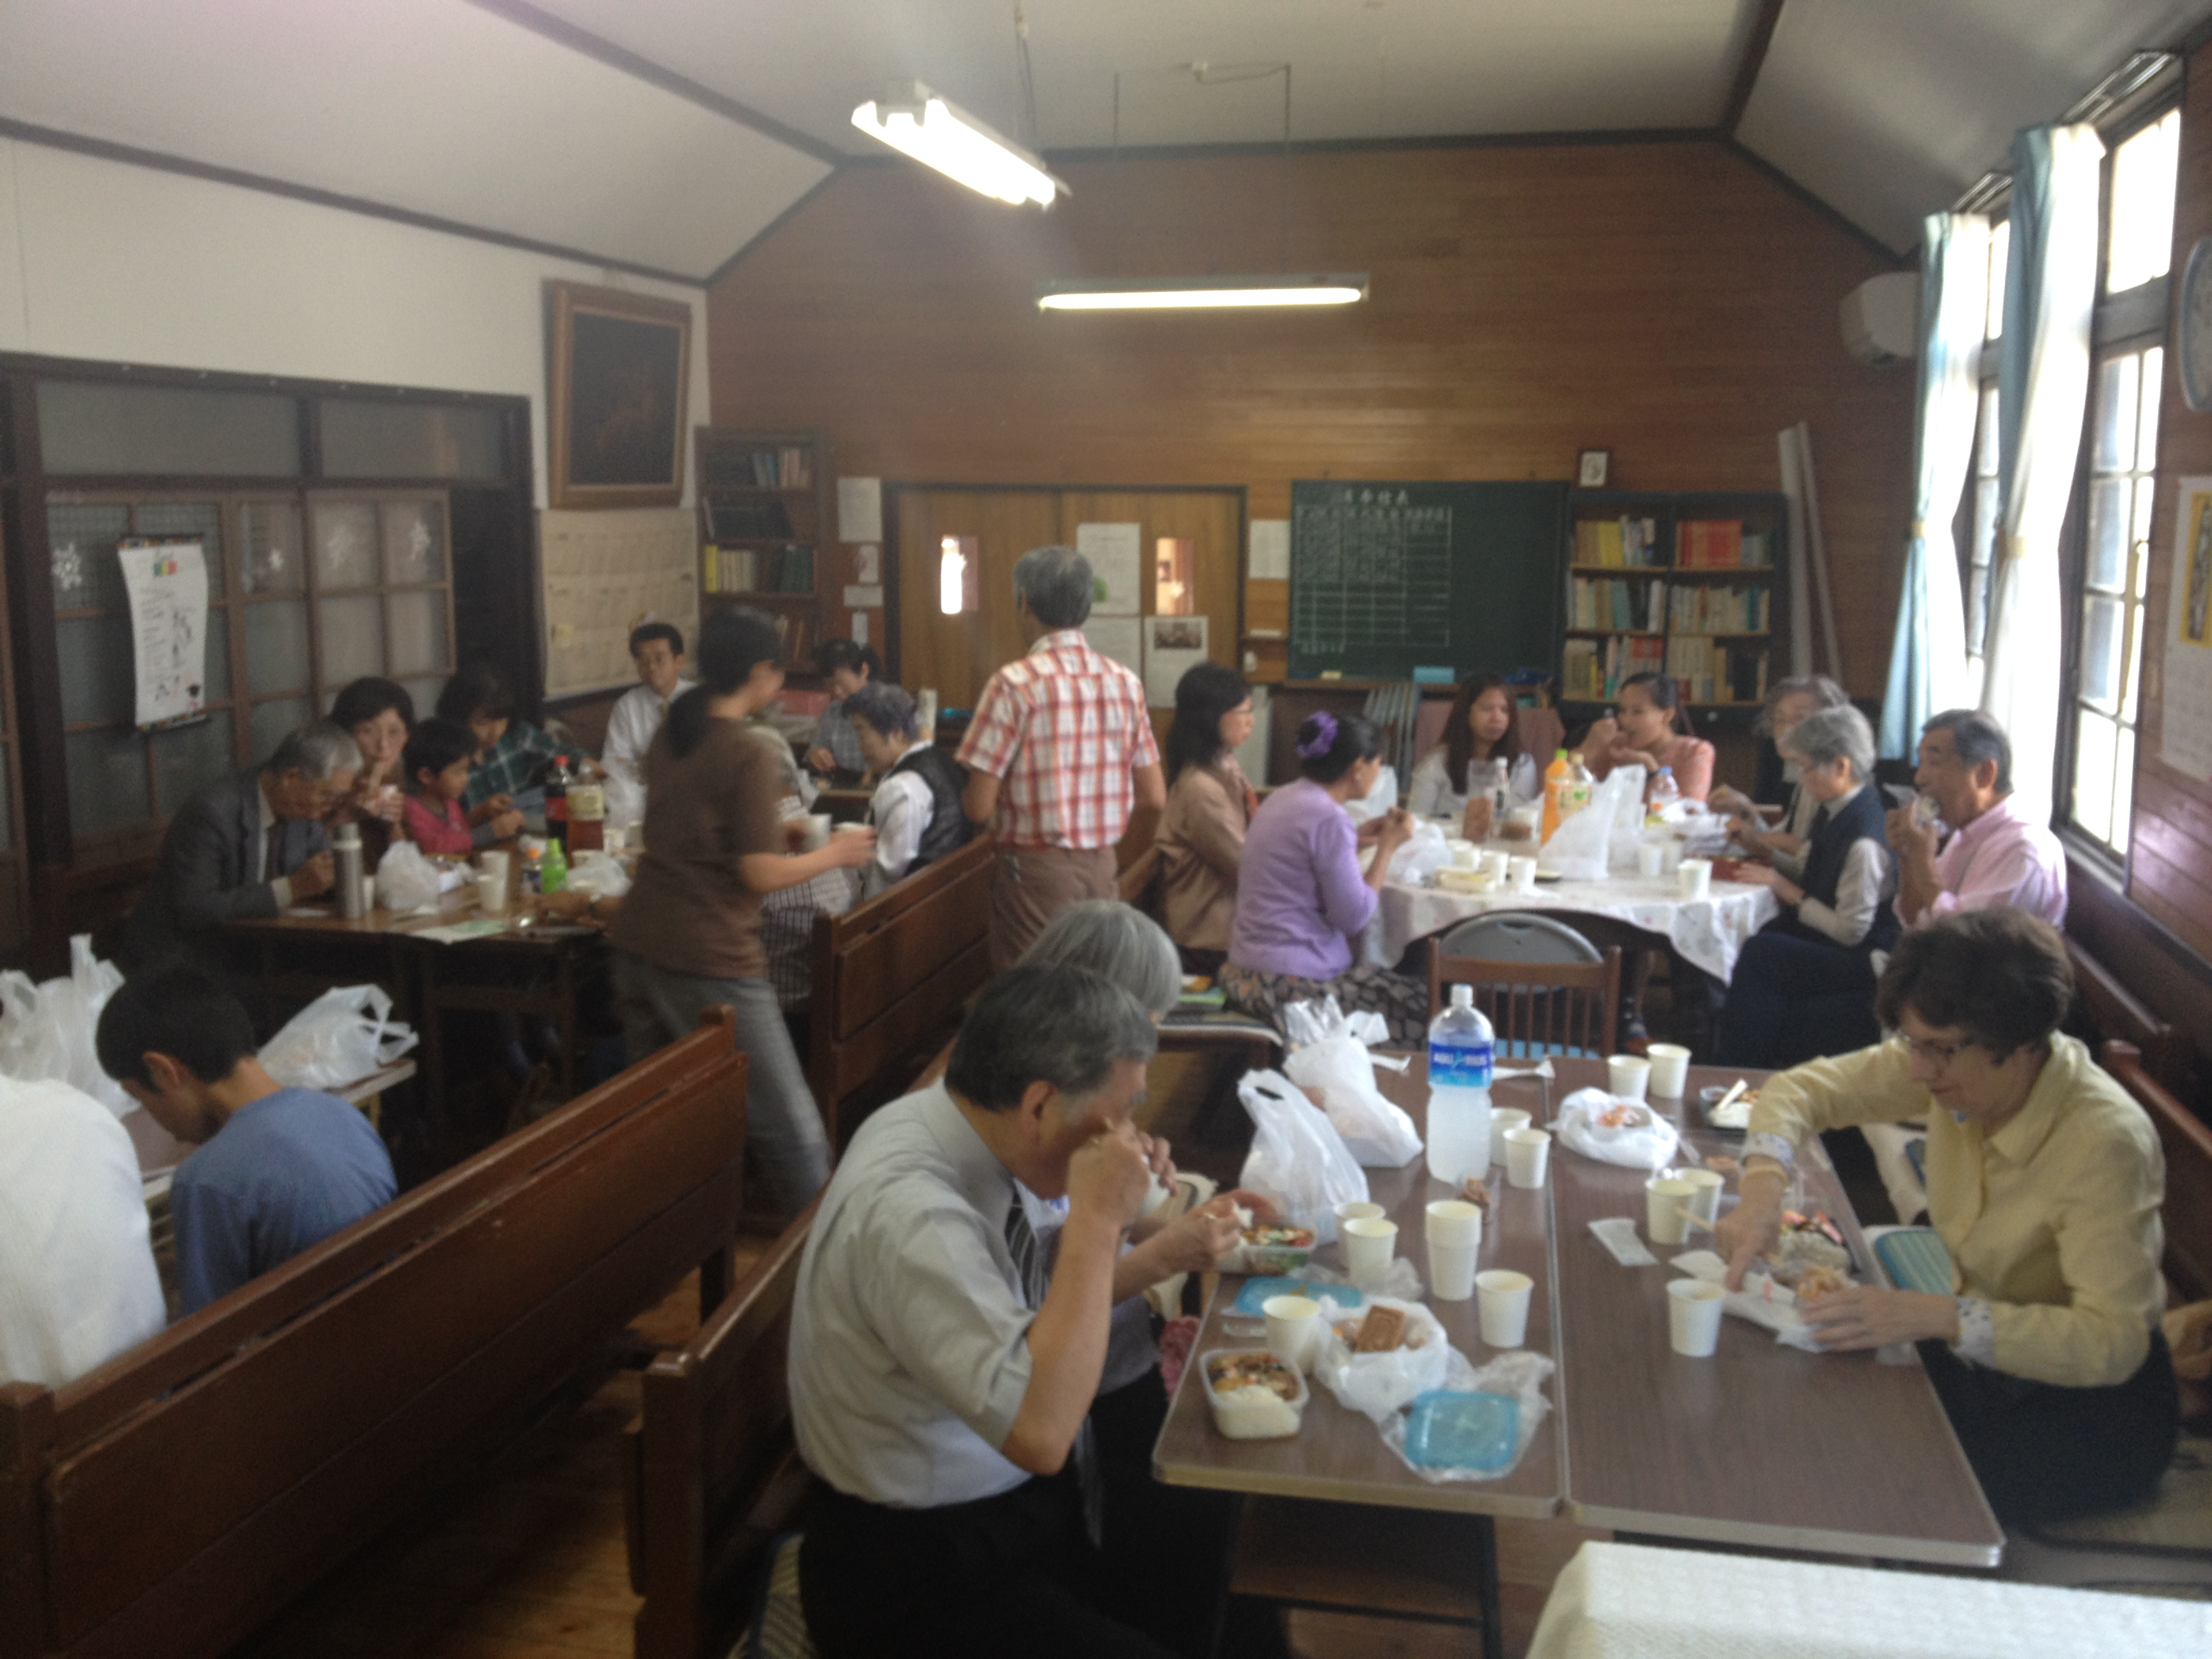 Lunch and fellowship at the Shizuoka area joint worship.